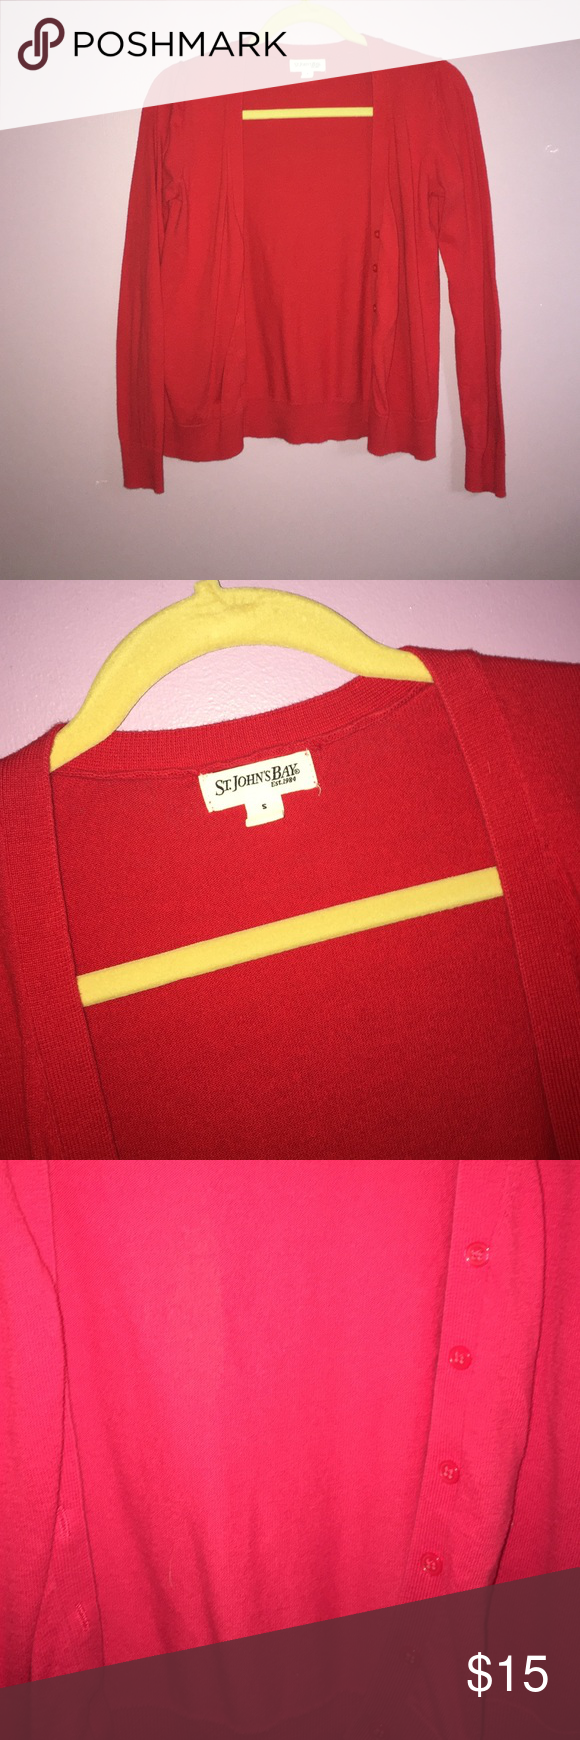 💖 St. John's Bay Red Cardigan • St. John's Bay Cardigan • Red • Small • Gently used • In great condition • NO TRADES • Open to reasonable offers • Bundle and save St. John's Bay Sweaters Cardigans